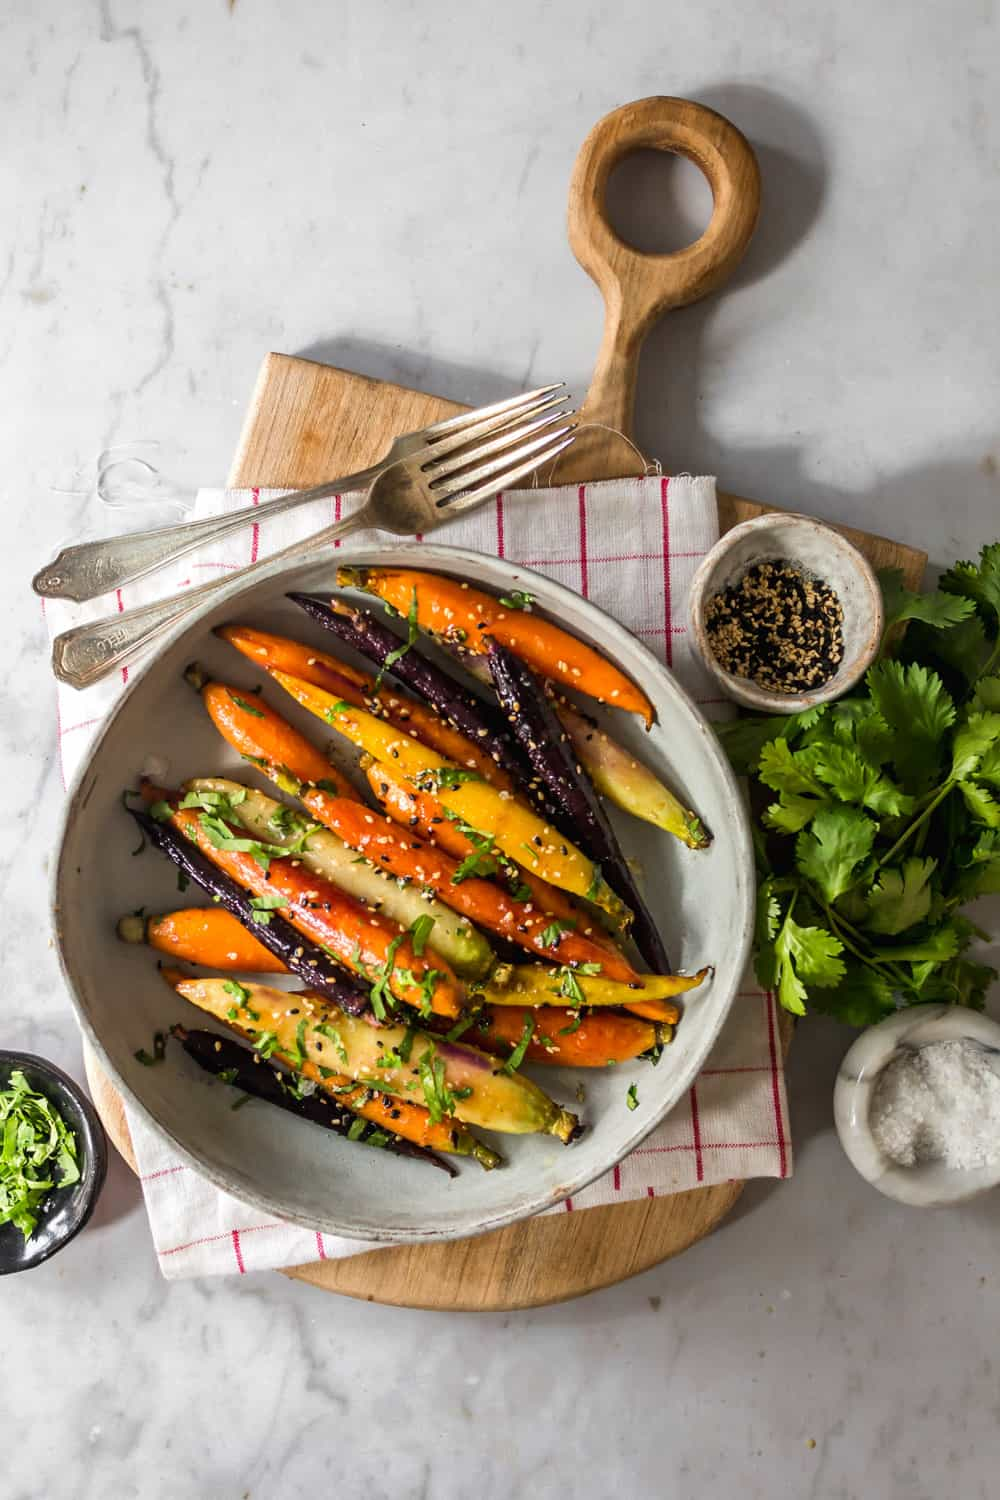 Roasted carrots in a large bowl with sesame seeds and cilantro on top.